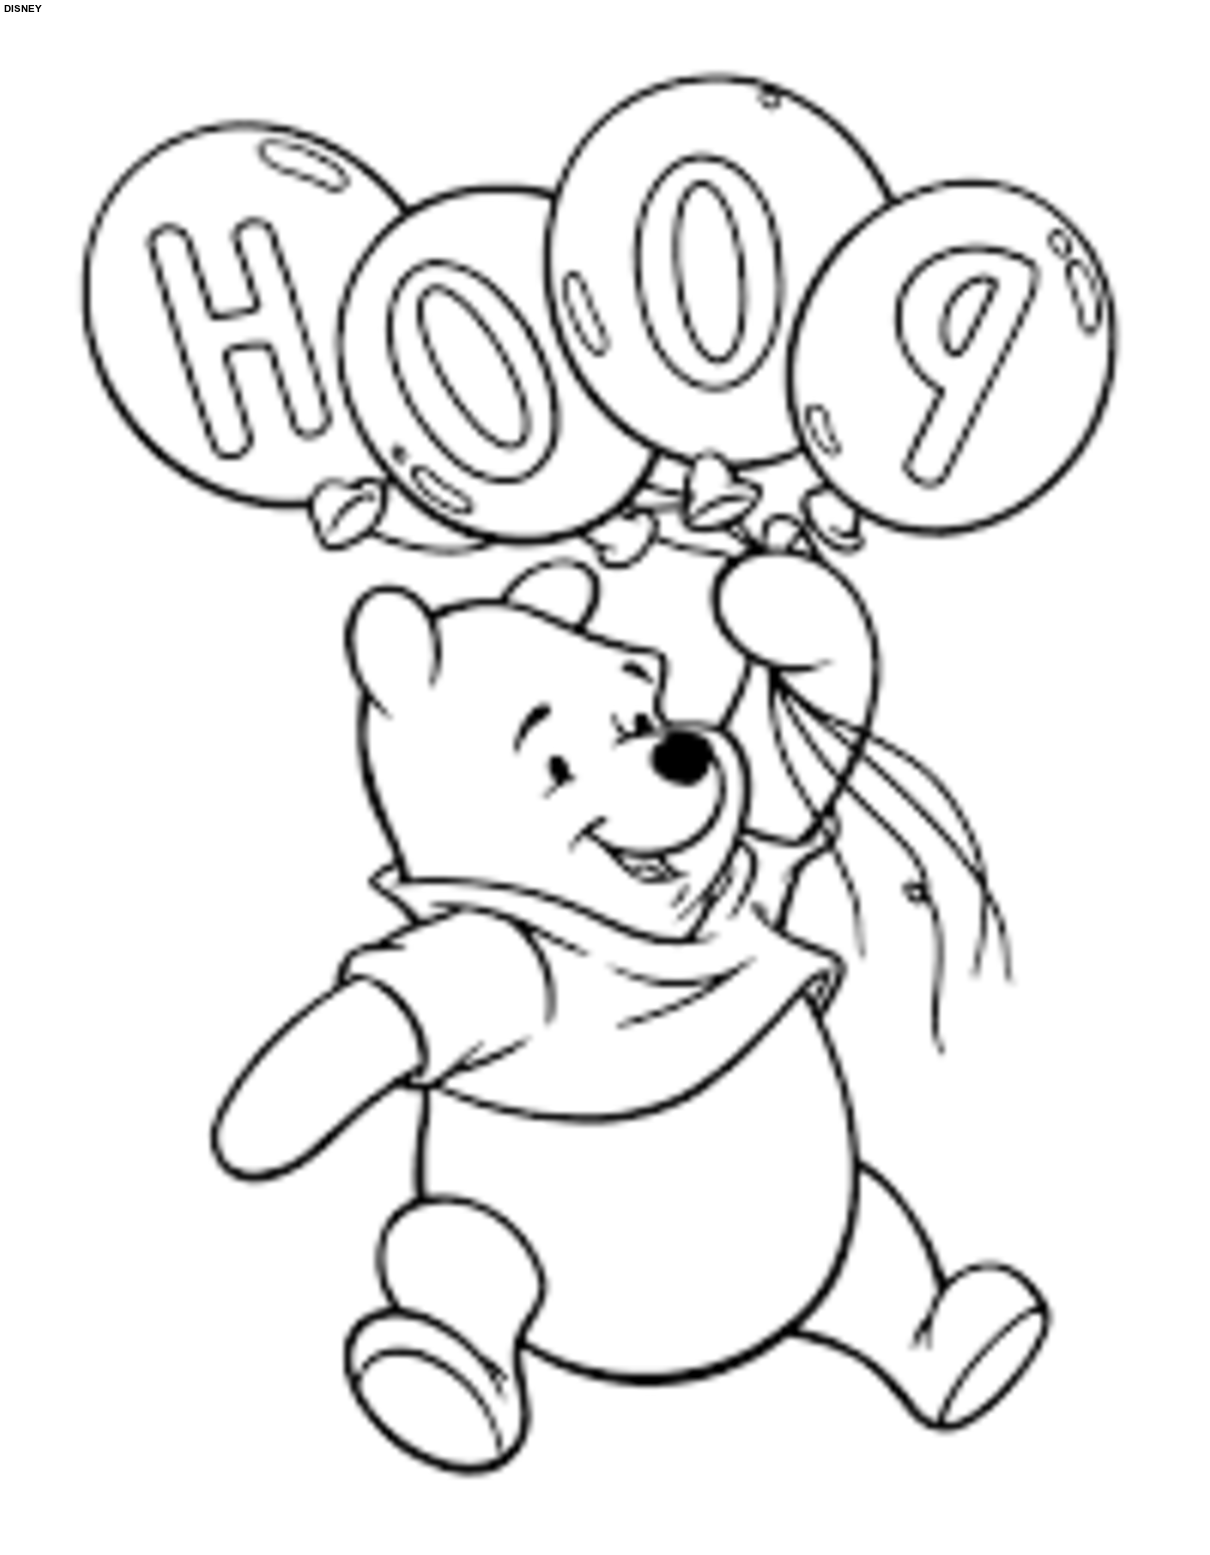 coloring disney characters coloring pages of disney characters quot jasmine and aladin coloring characters disney